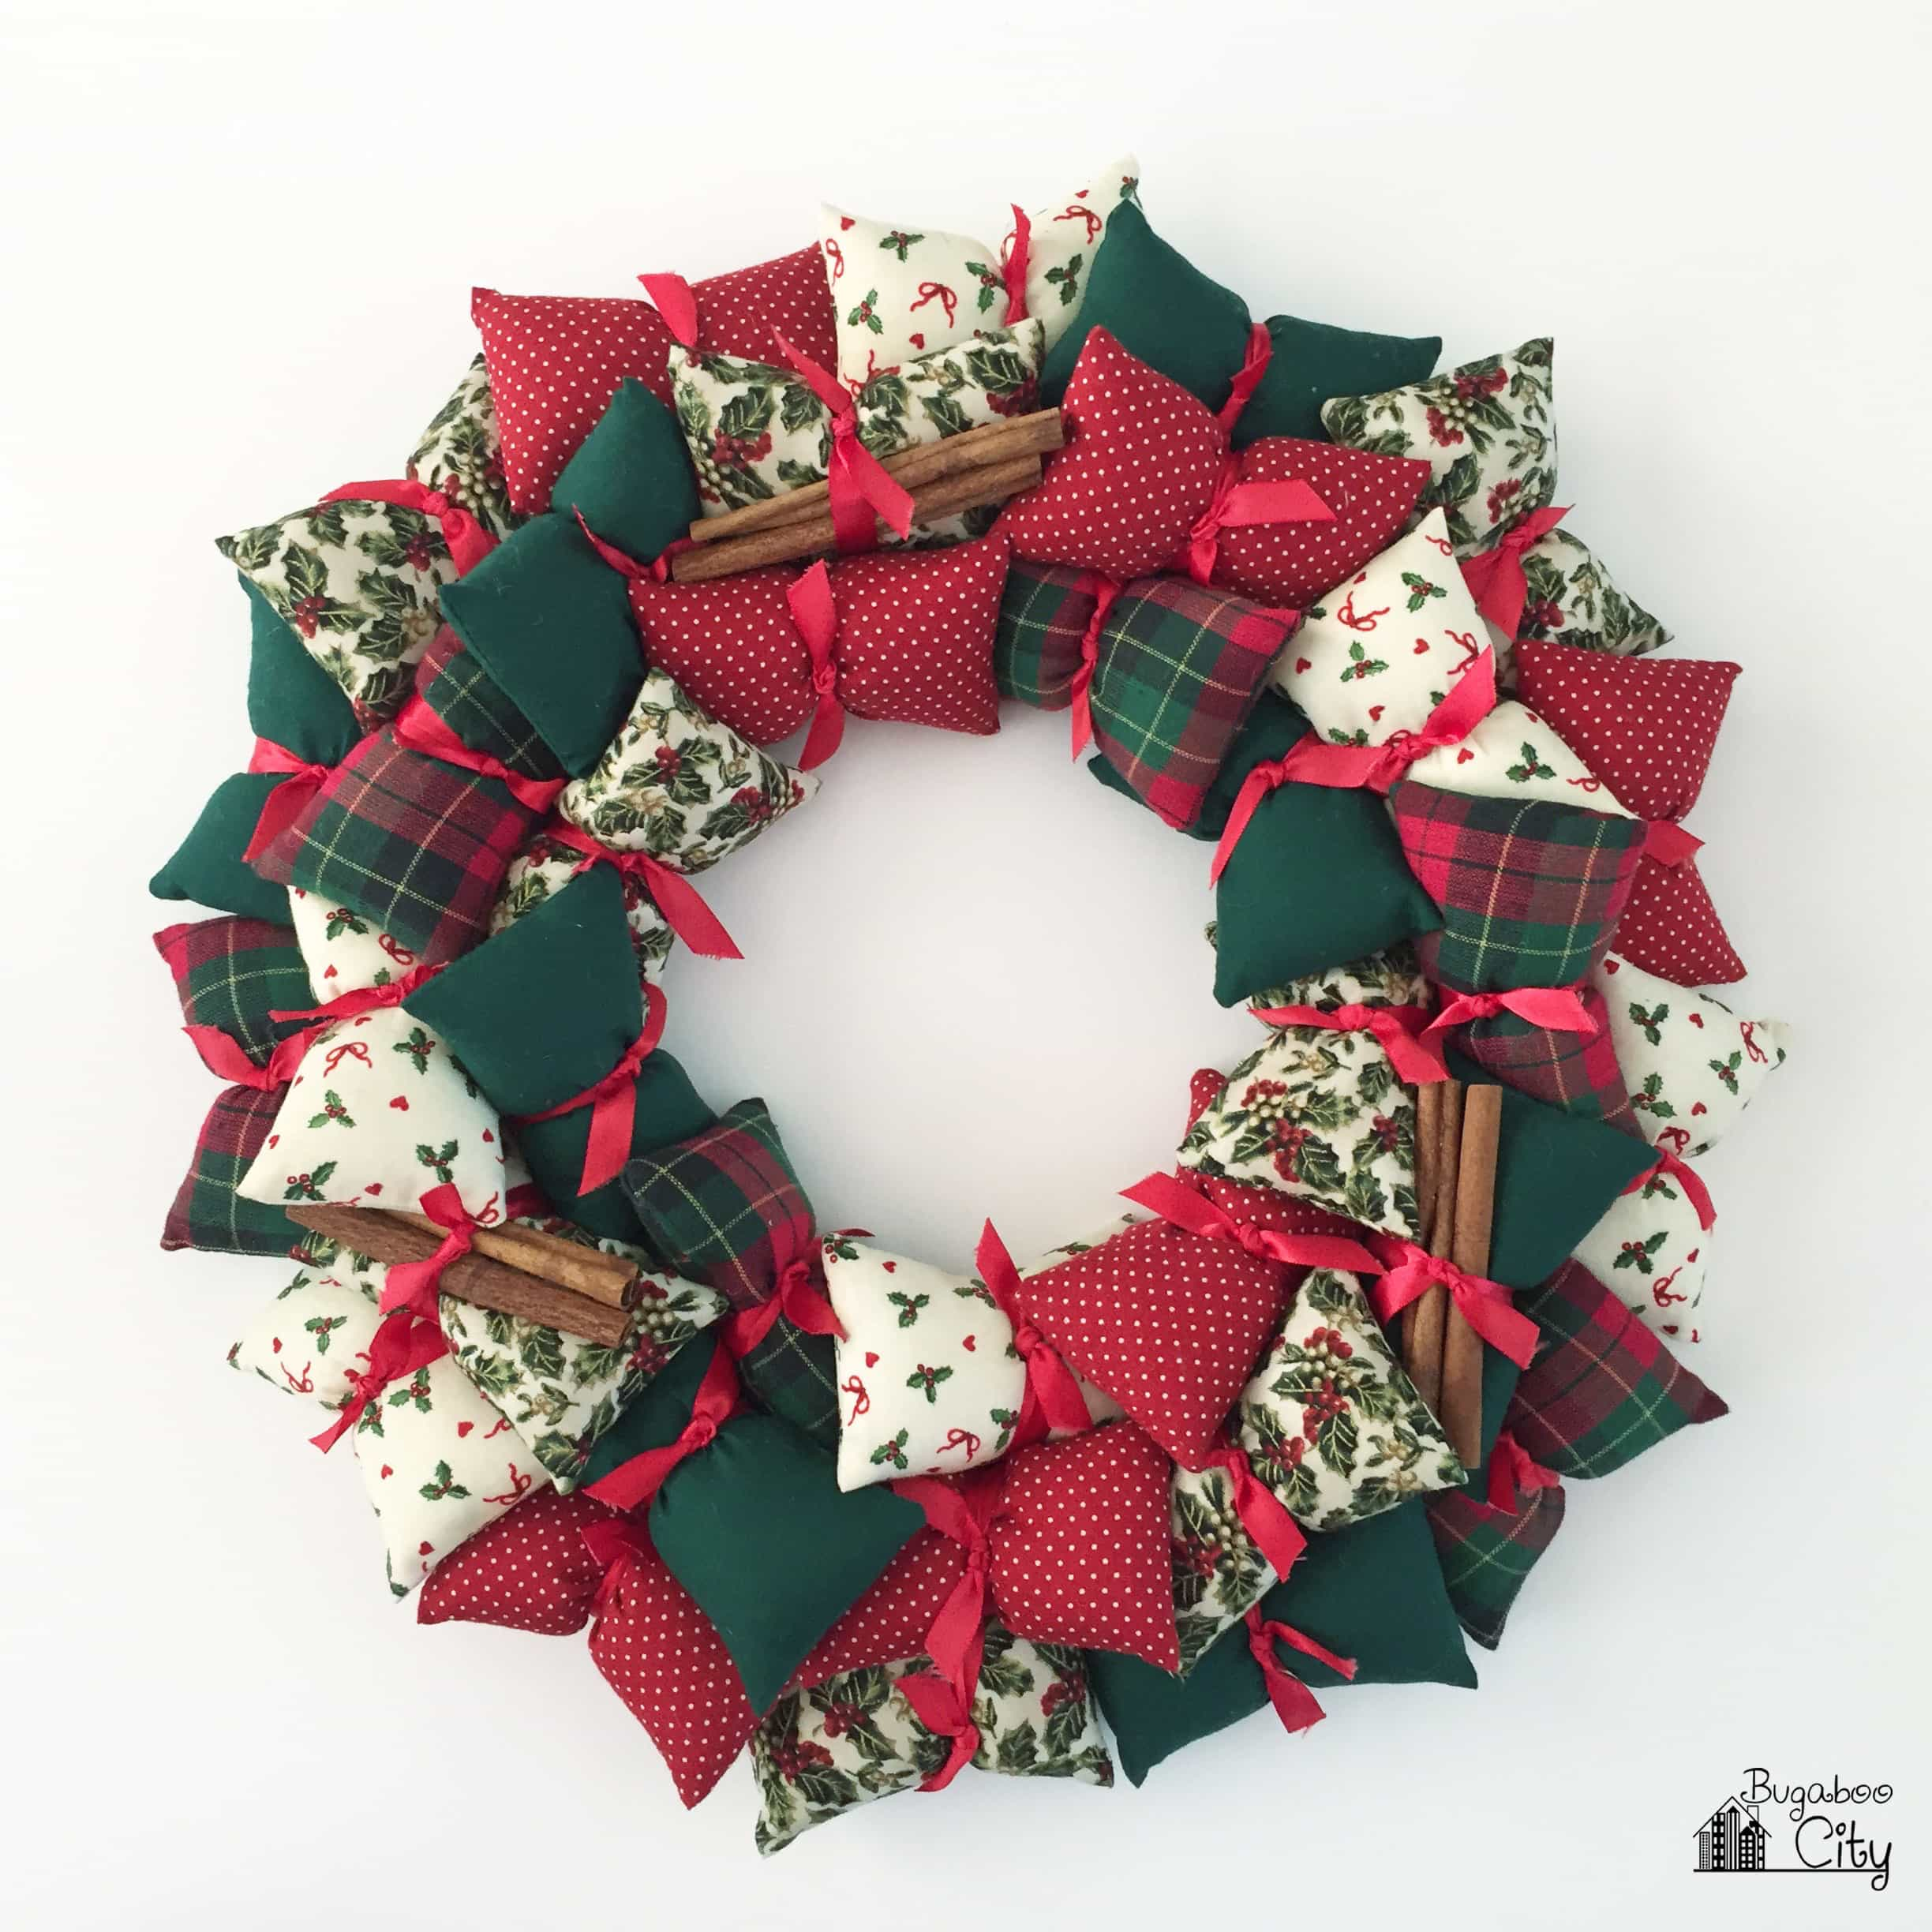 Diy Decorative Christmas Pillows : Holiday Pillow Wreath - BugabooCity